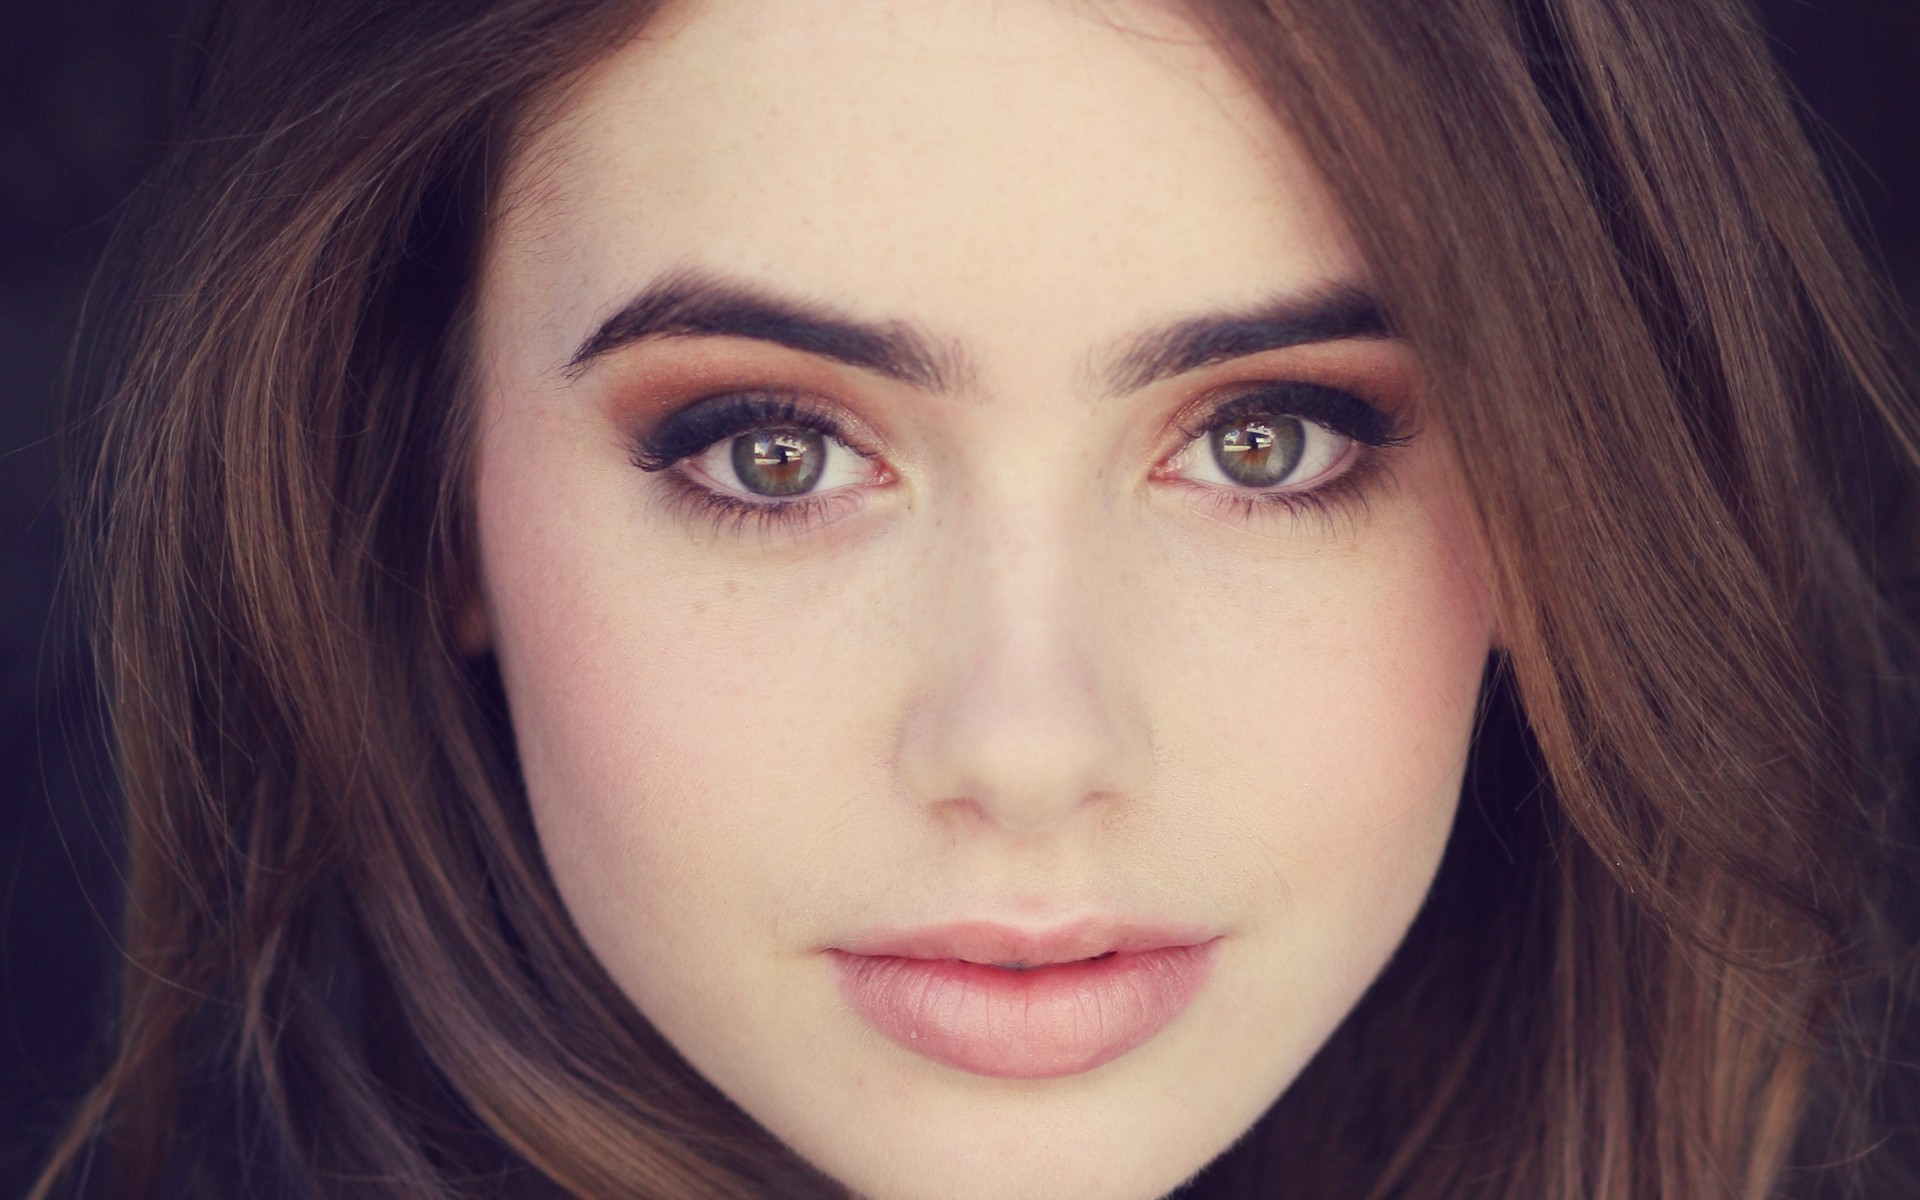 Lily Collins Wallpapers   Wallpaper High Definition High Quality 1920x1200